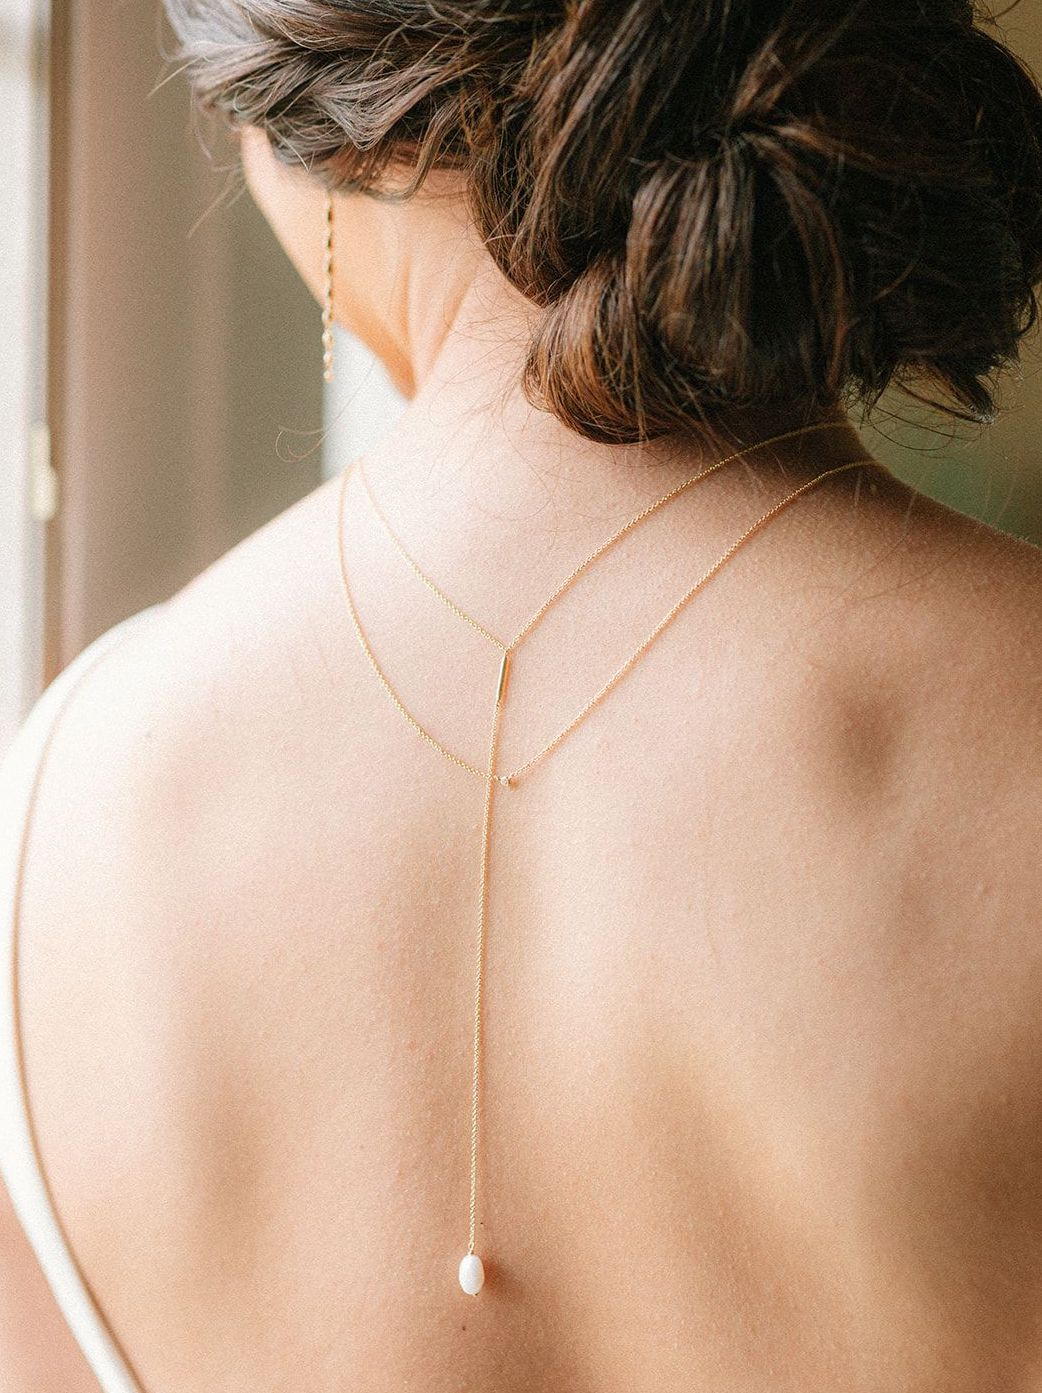 Bride's back is turned to show the pearl backing of her artfully designed necklace for the styled shoot.